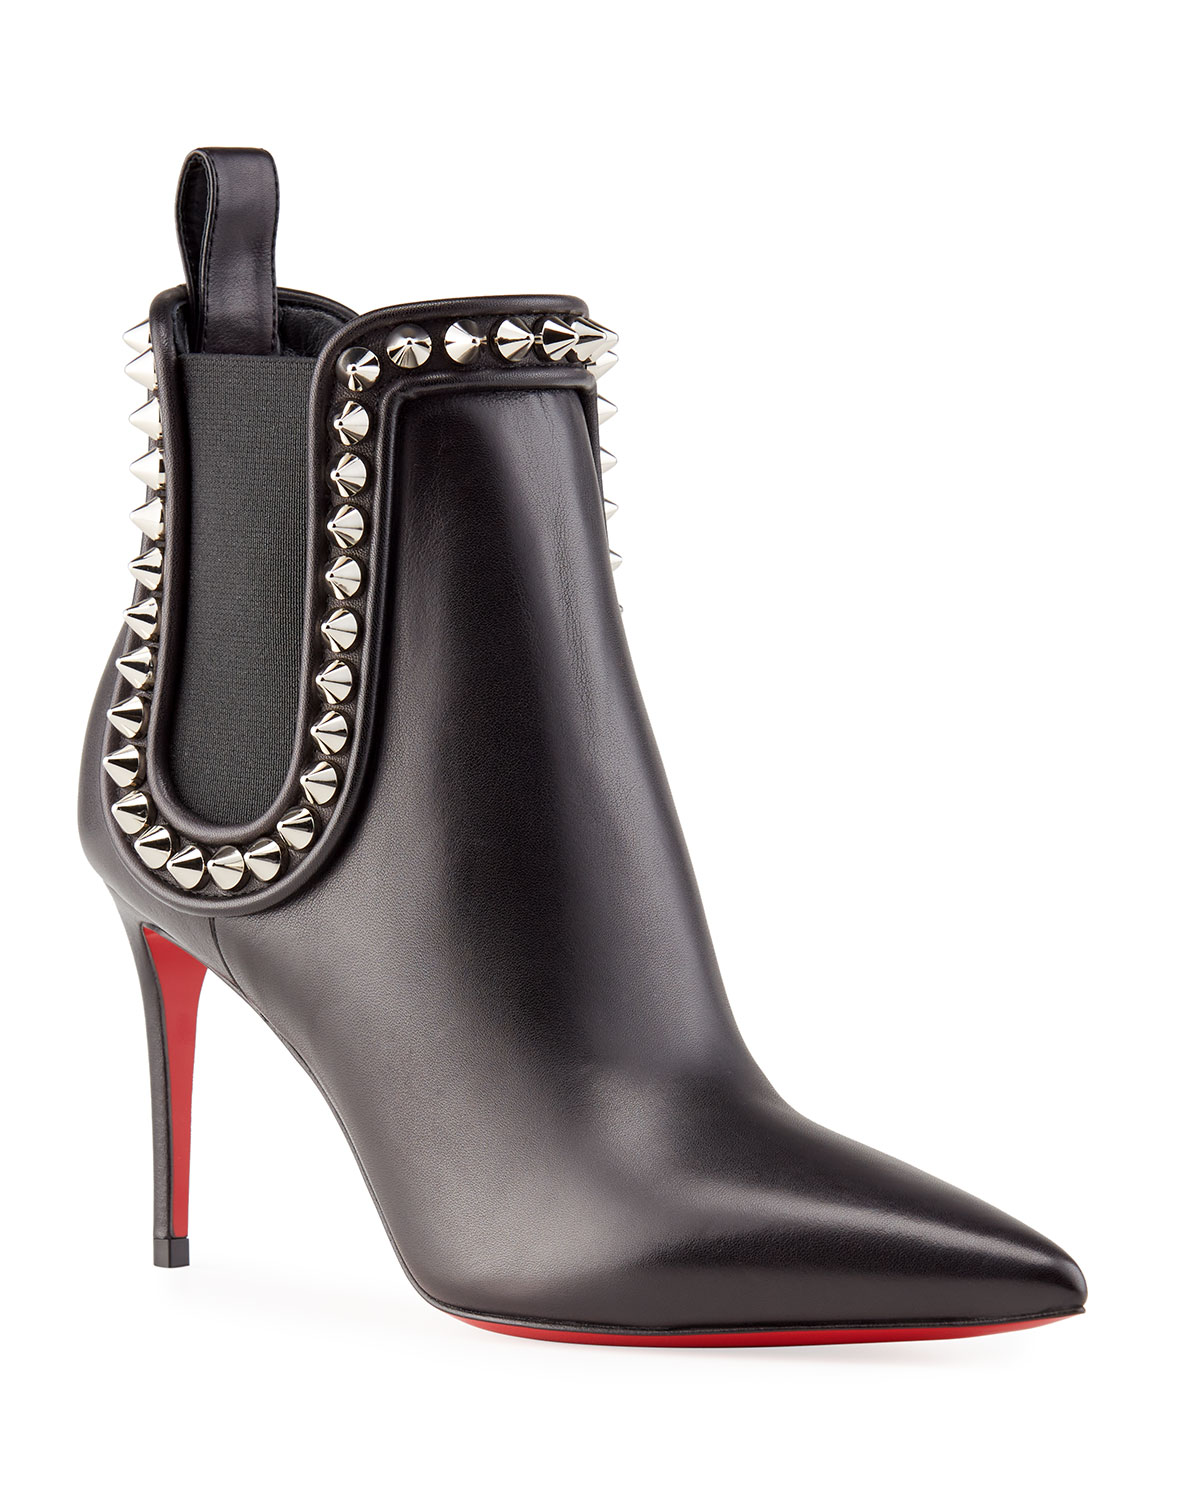 Christian Louboutin Crapaboot Spiked Napa Stiletto Booties